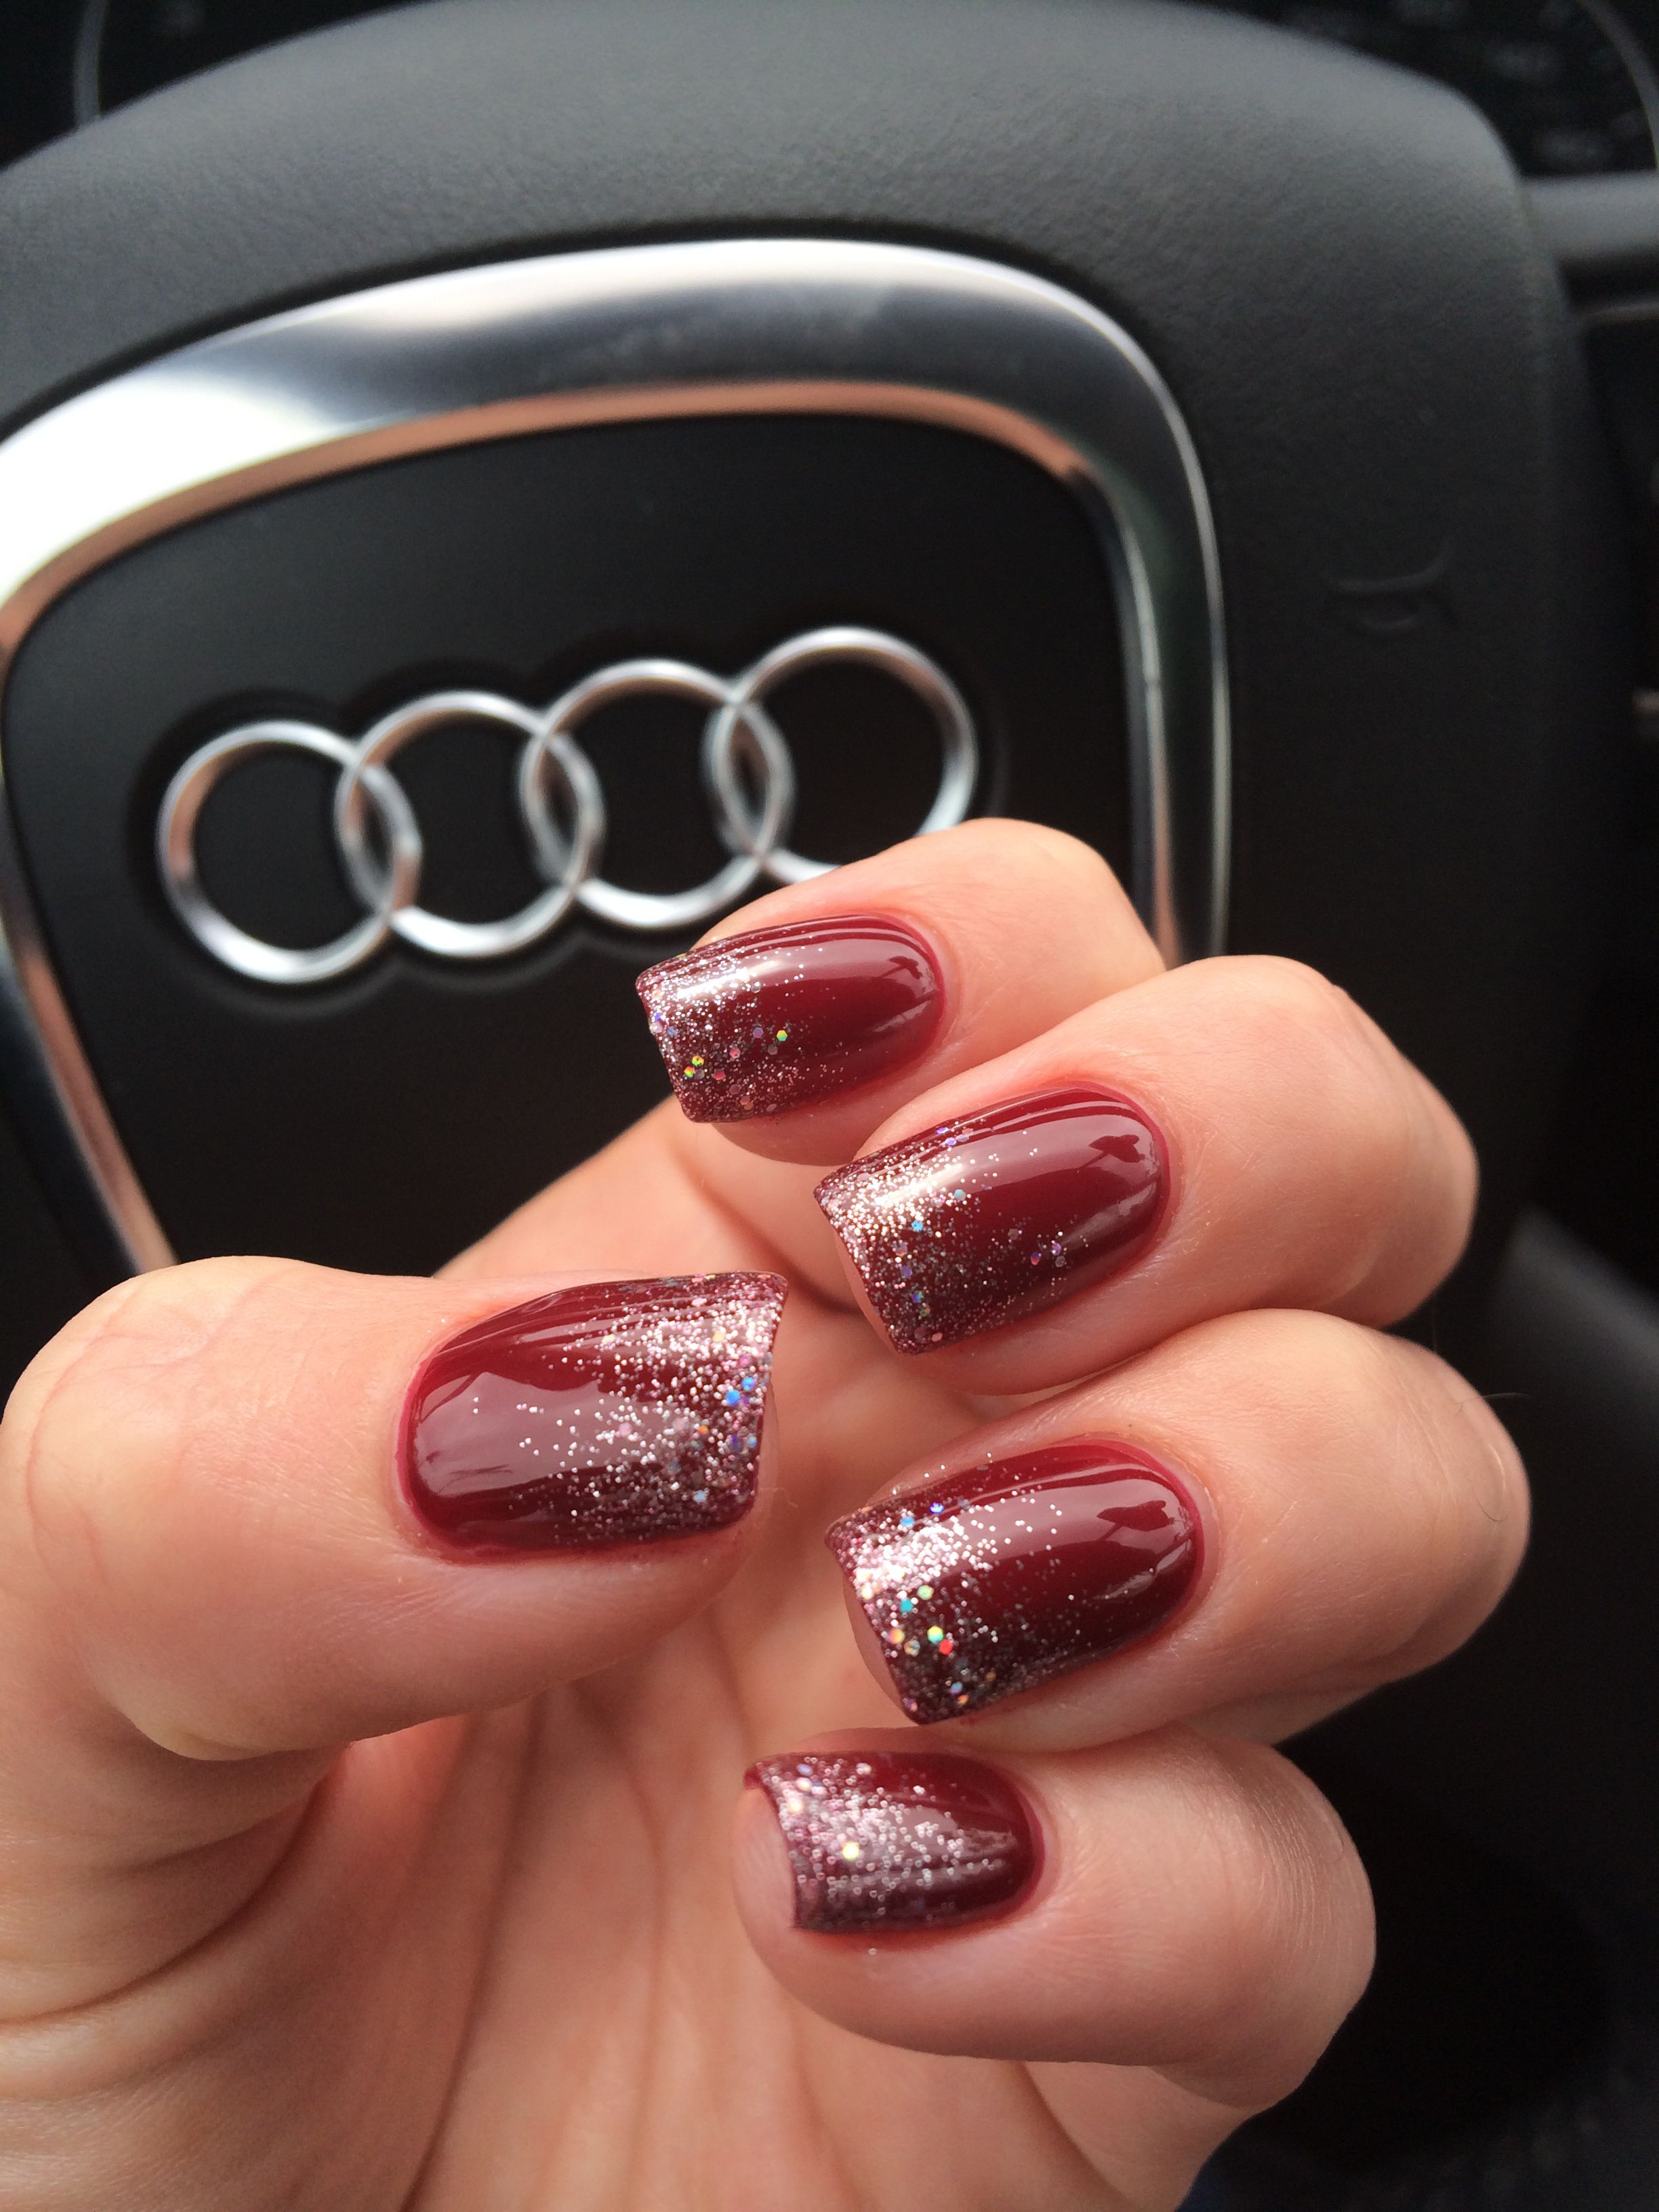 Dipped In Glitter A Subtle Silver Sparkle Ombre Over Burgundy Nails Christmas Nails Glitter Burgundy Nails Dipped Nails